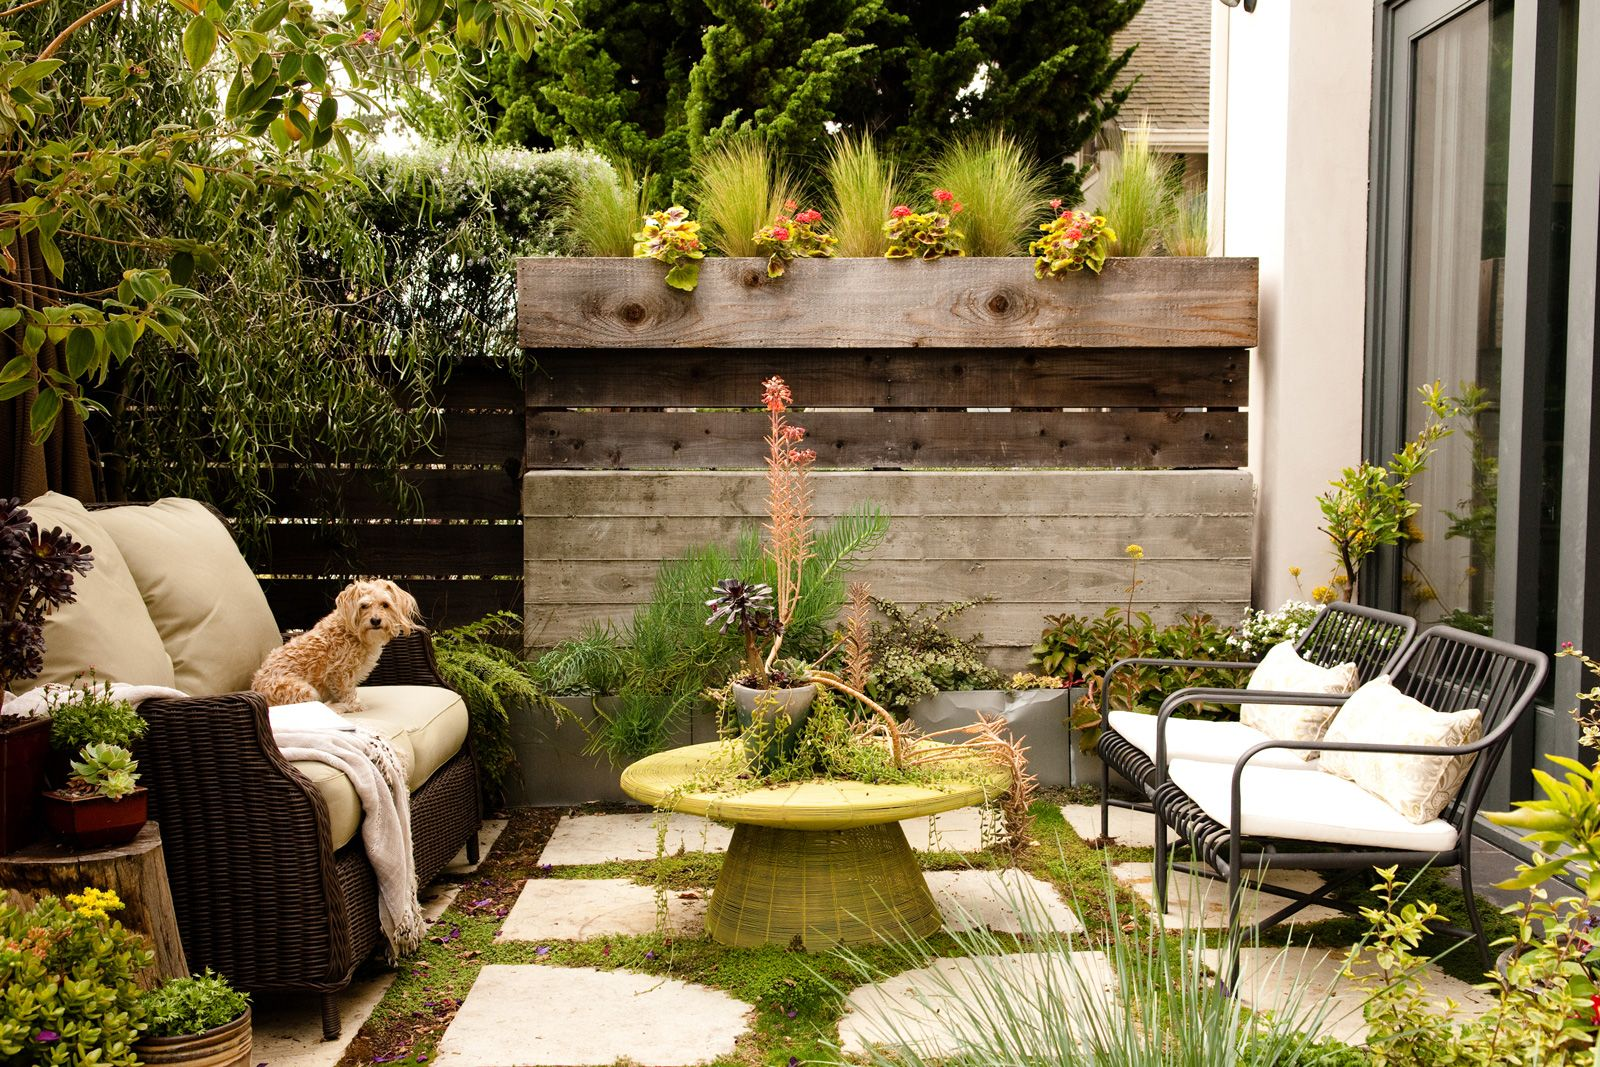 5 Small Backyard Ideas to Make Your Cramped Outdoor Space Feel Like ...